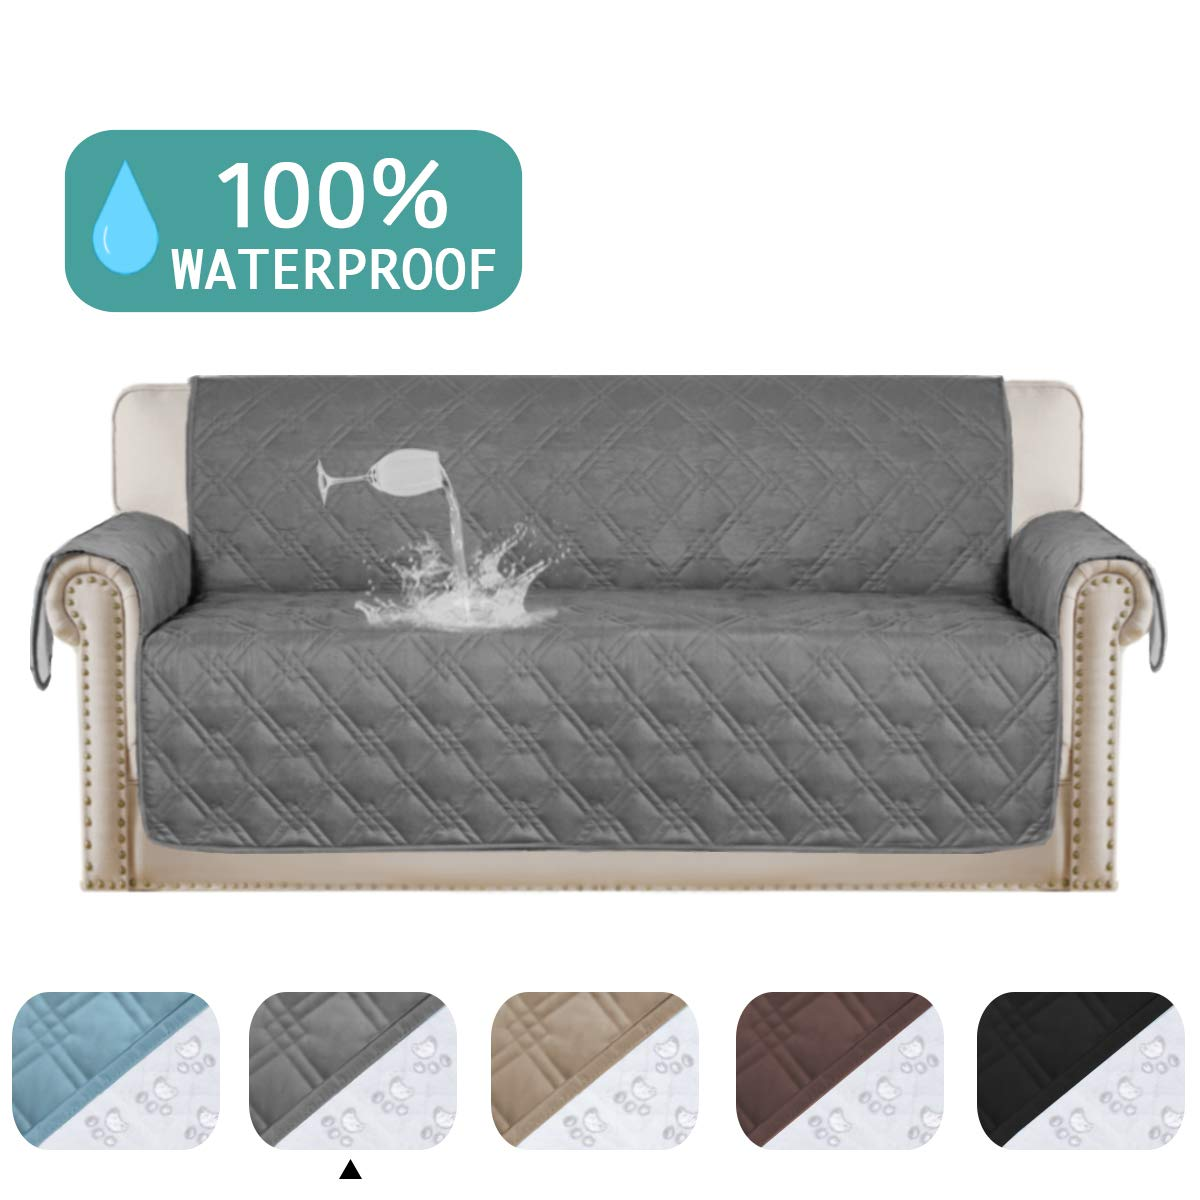 Amazing Turquoize 100 Waterproof Dog Couch Cover Quilted Sofa Protector Couch Covers For 3 Cushion Couch Soft And Smooth Quilted Furniture Sofa Covers For Pdpeps Interior Chair Design Pdpepsorg